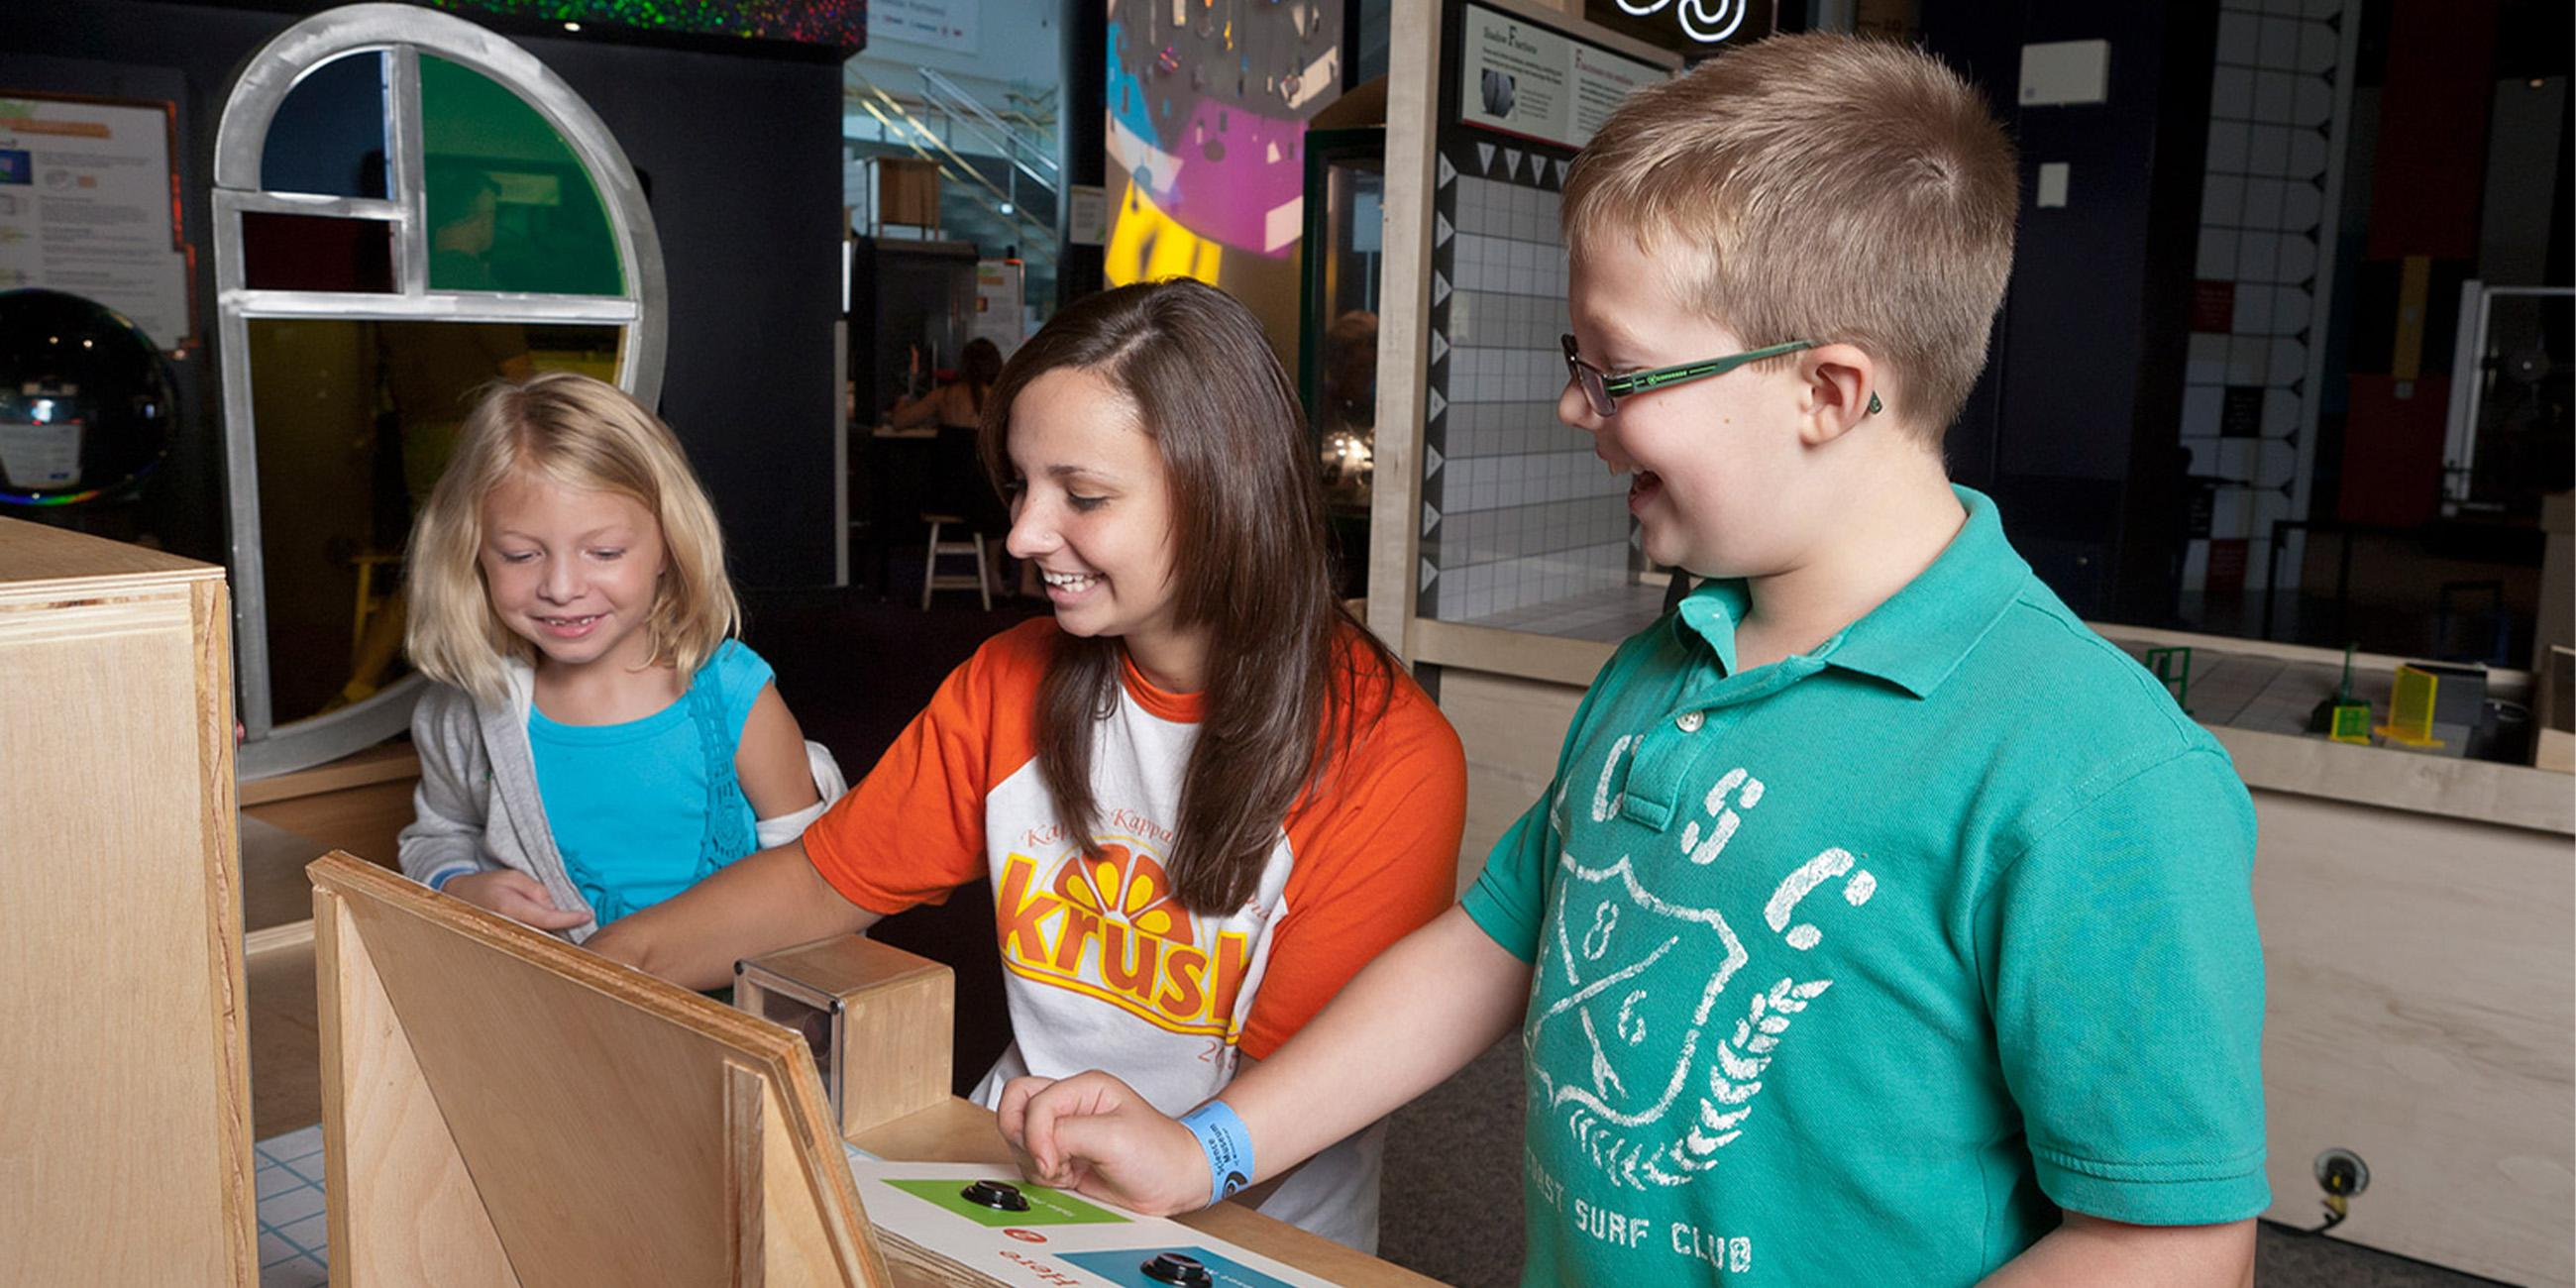 Kids experimenting in the Math Moves gallery.